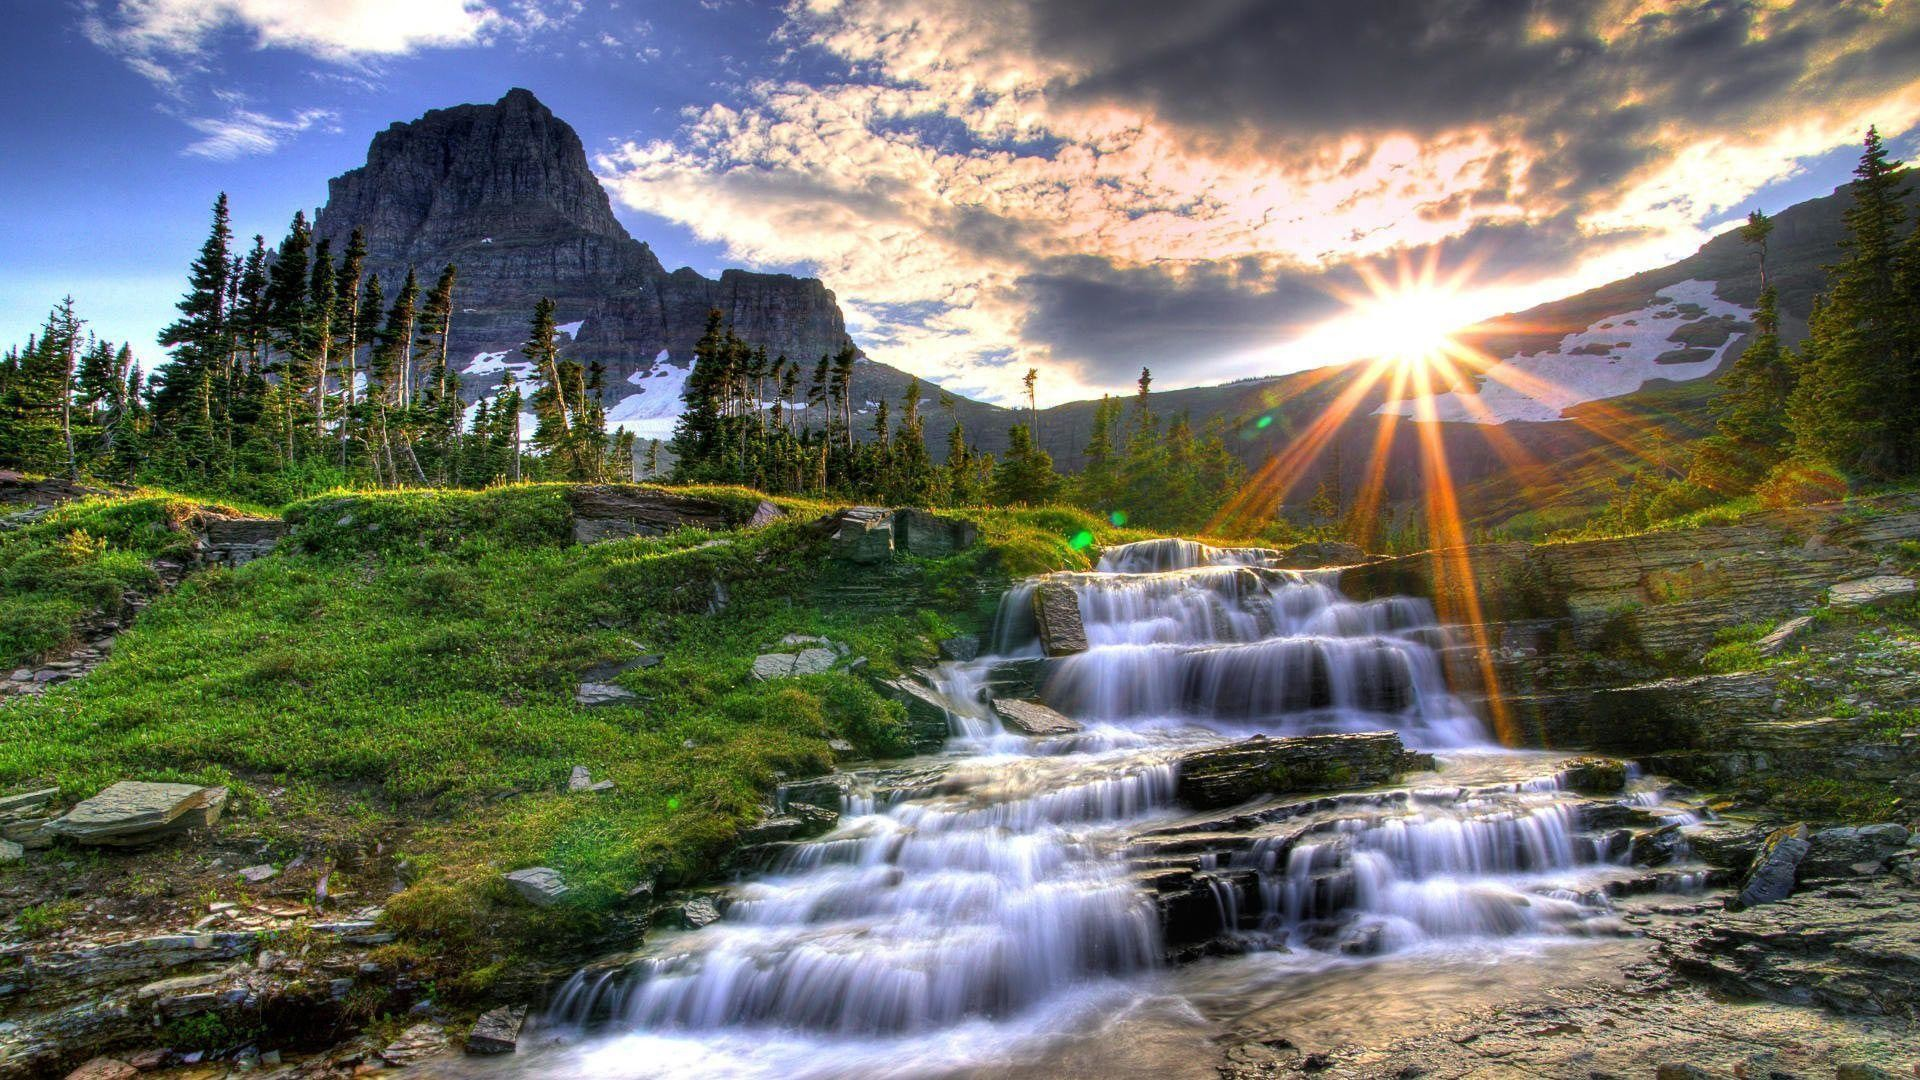 Res: 1920x1080, Cool Hd Nature Wallpapers Hd Background 8 HD Wallpapers   Hdimges.